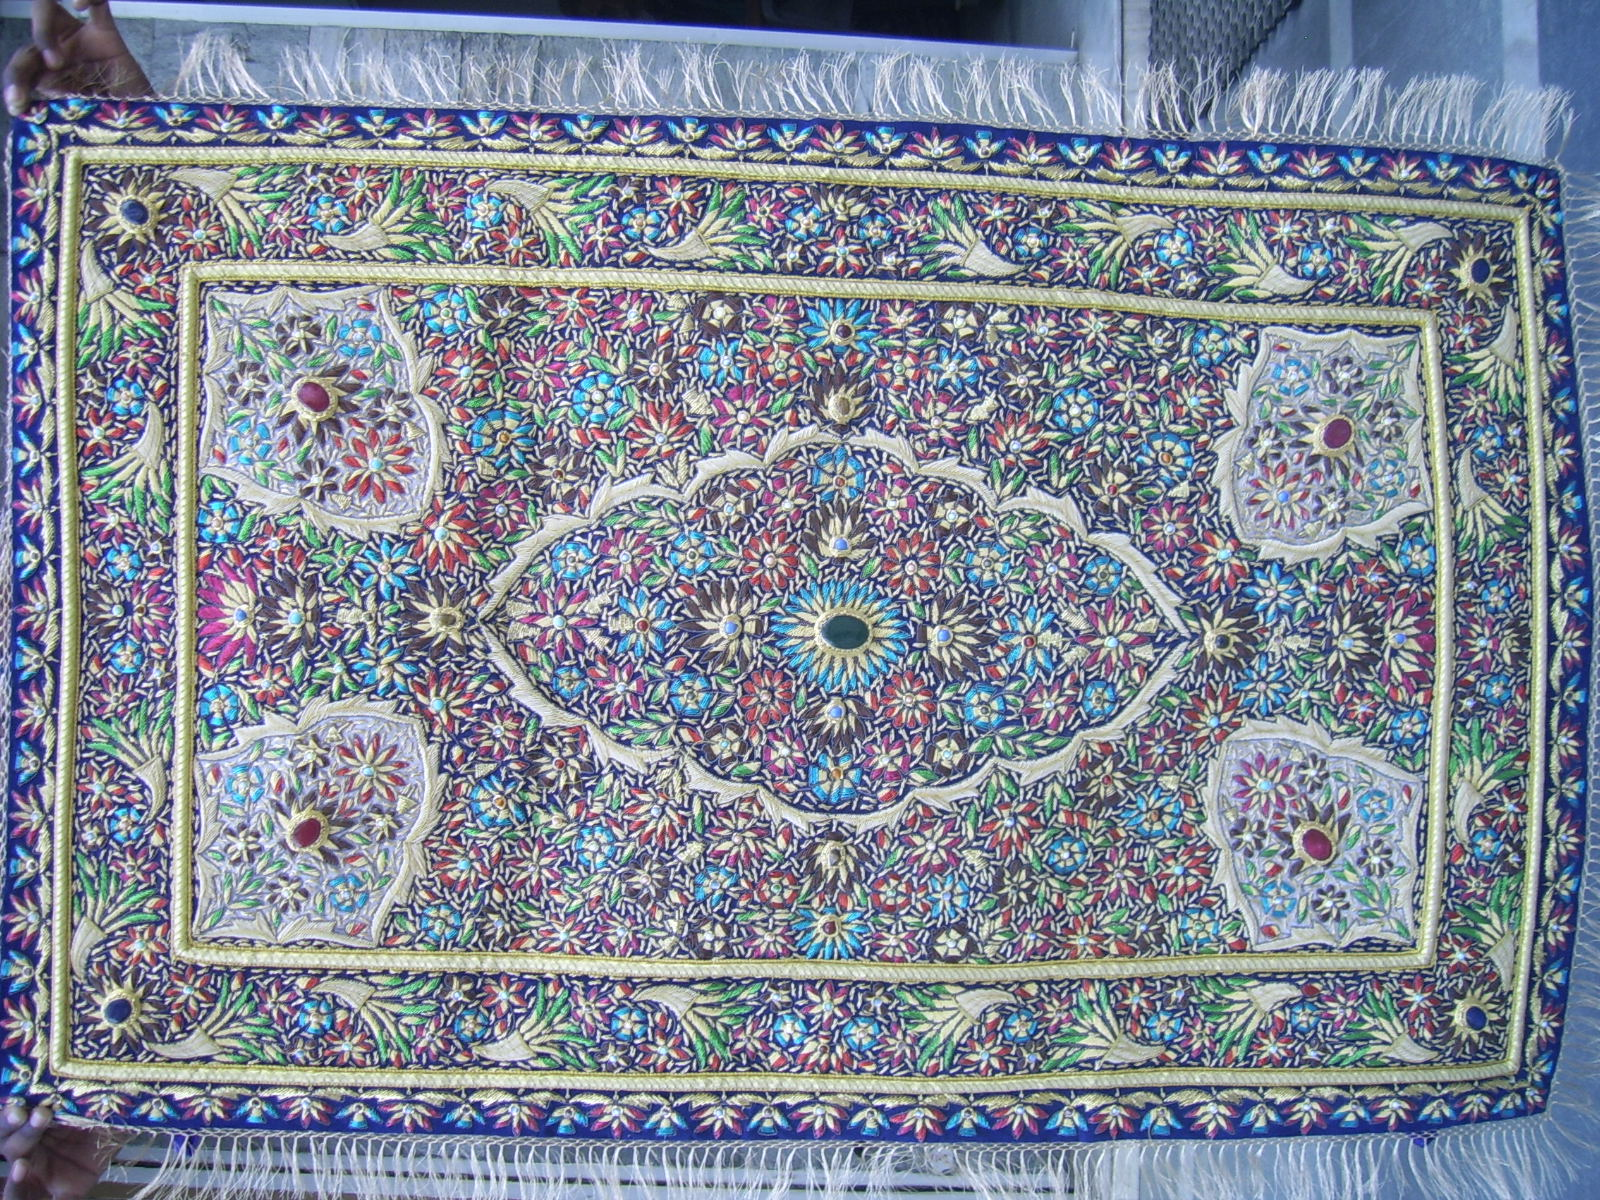 Zari Art The Art done by Golden Thread and Silk Thread & Embroidery Zari Art And Jewels Carpets for Wall HangingEmbroidery ...